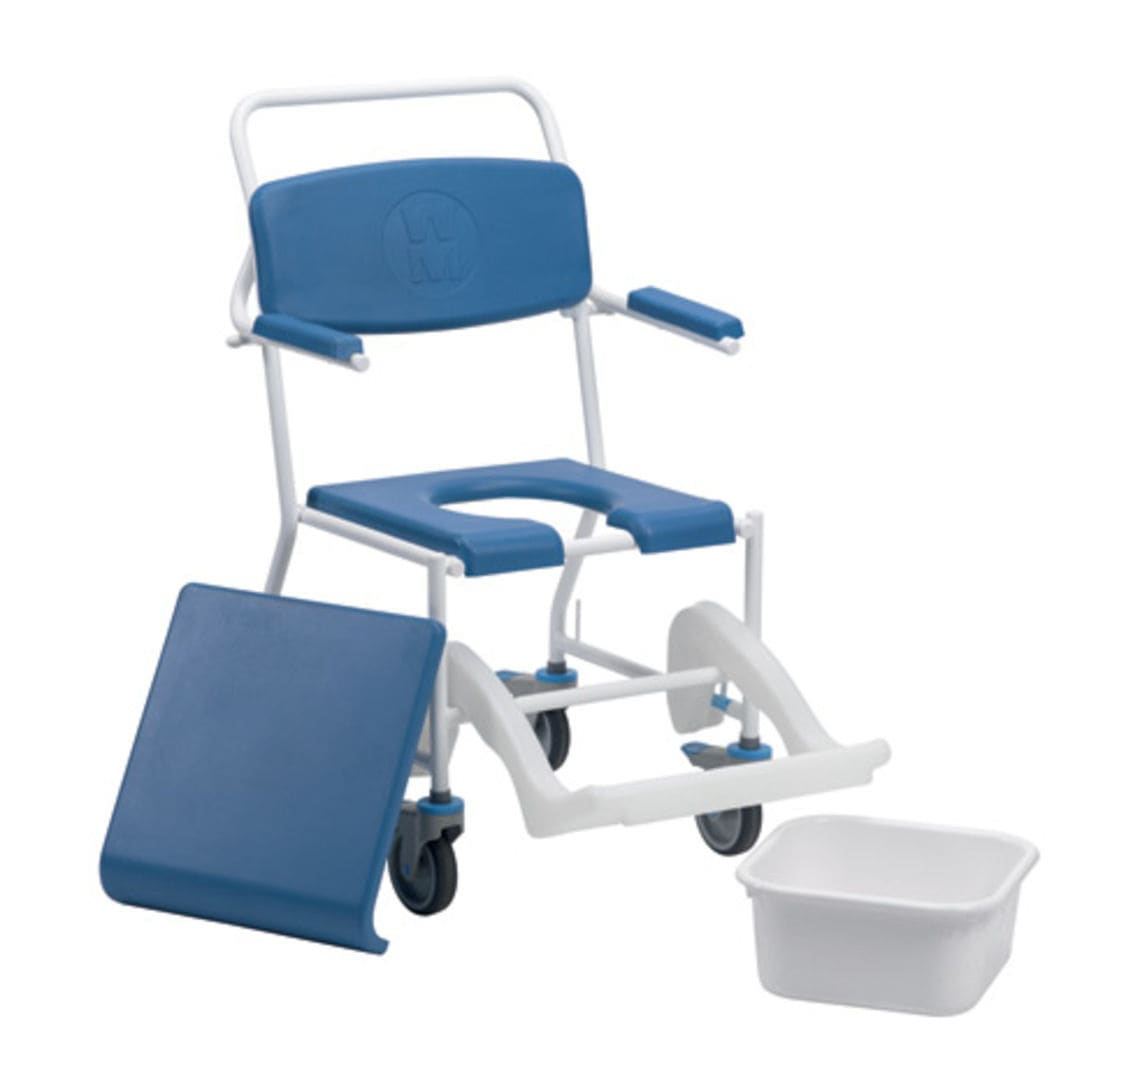 Shower chair - Uppingham - Drive DeVilbiss Europe